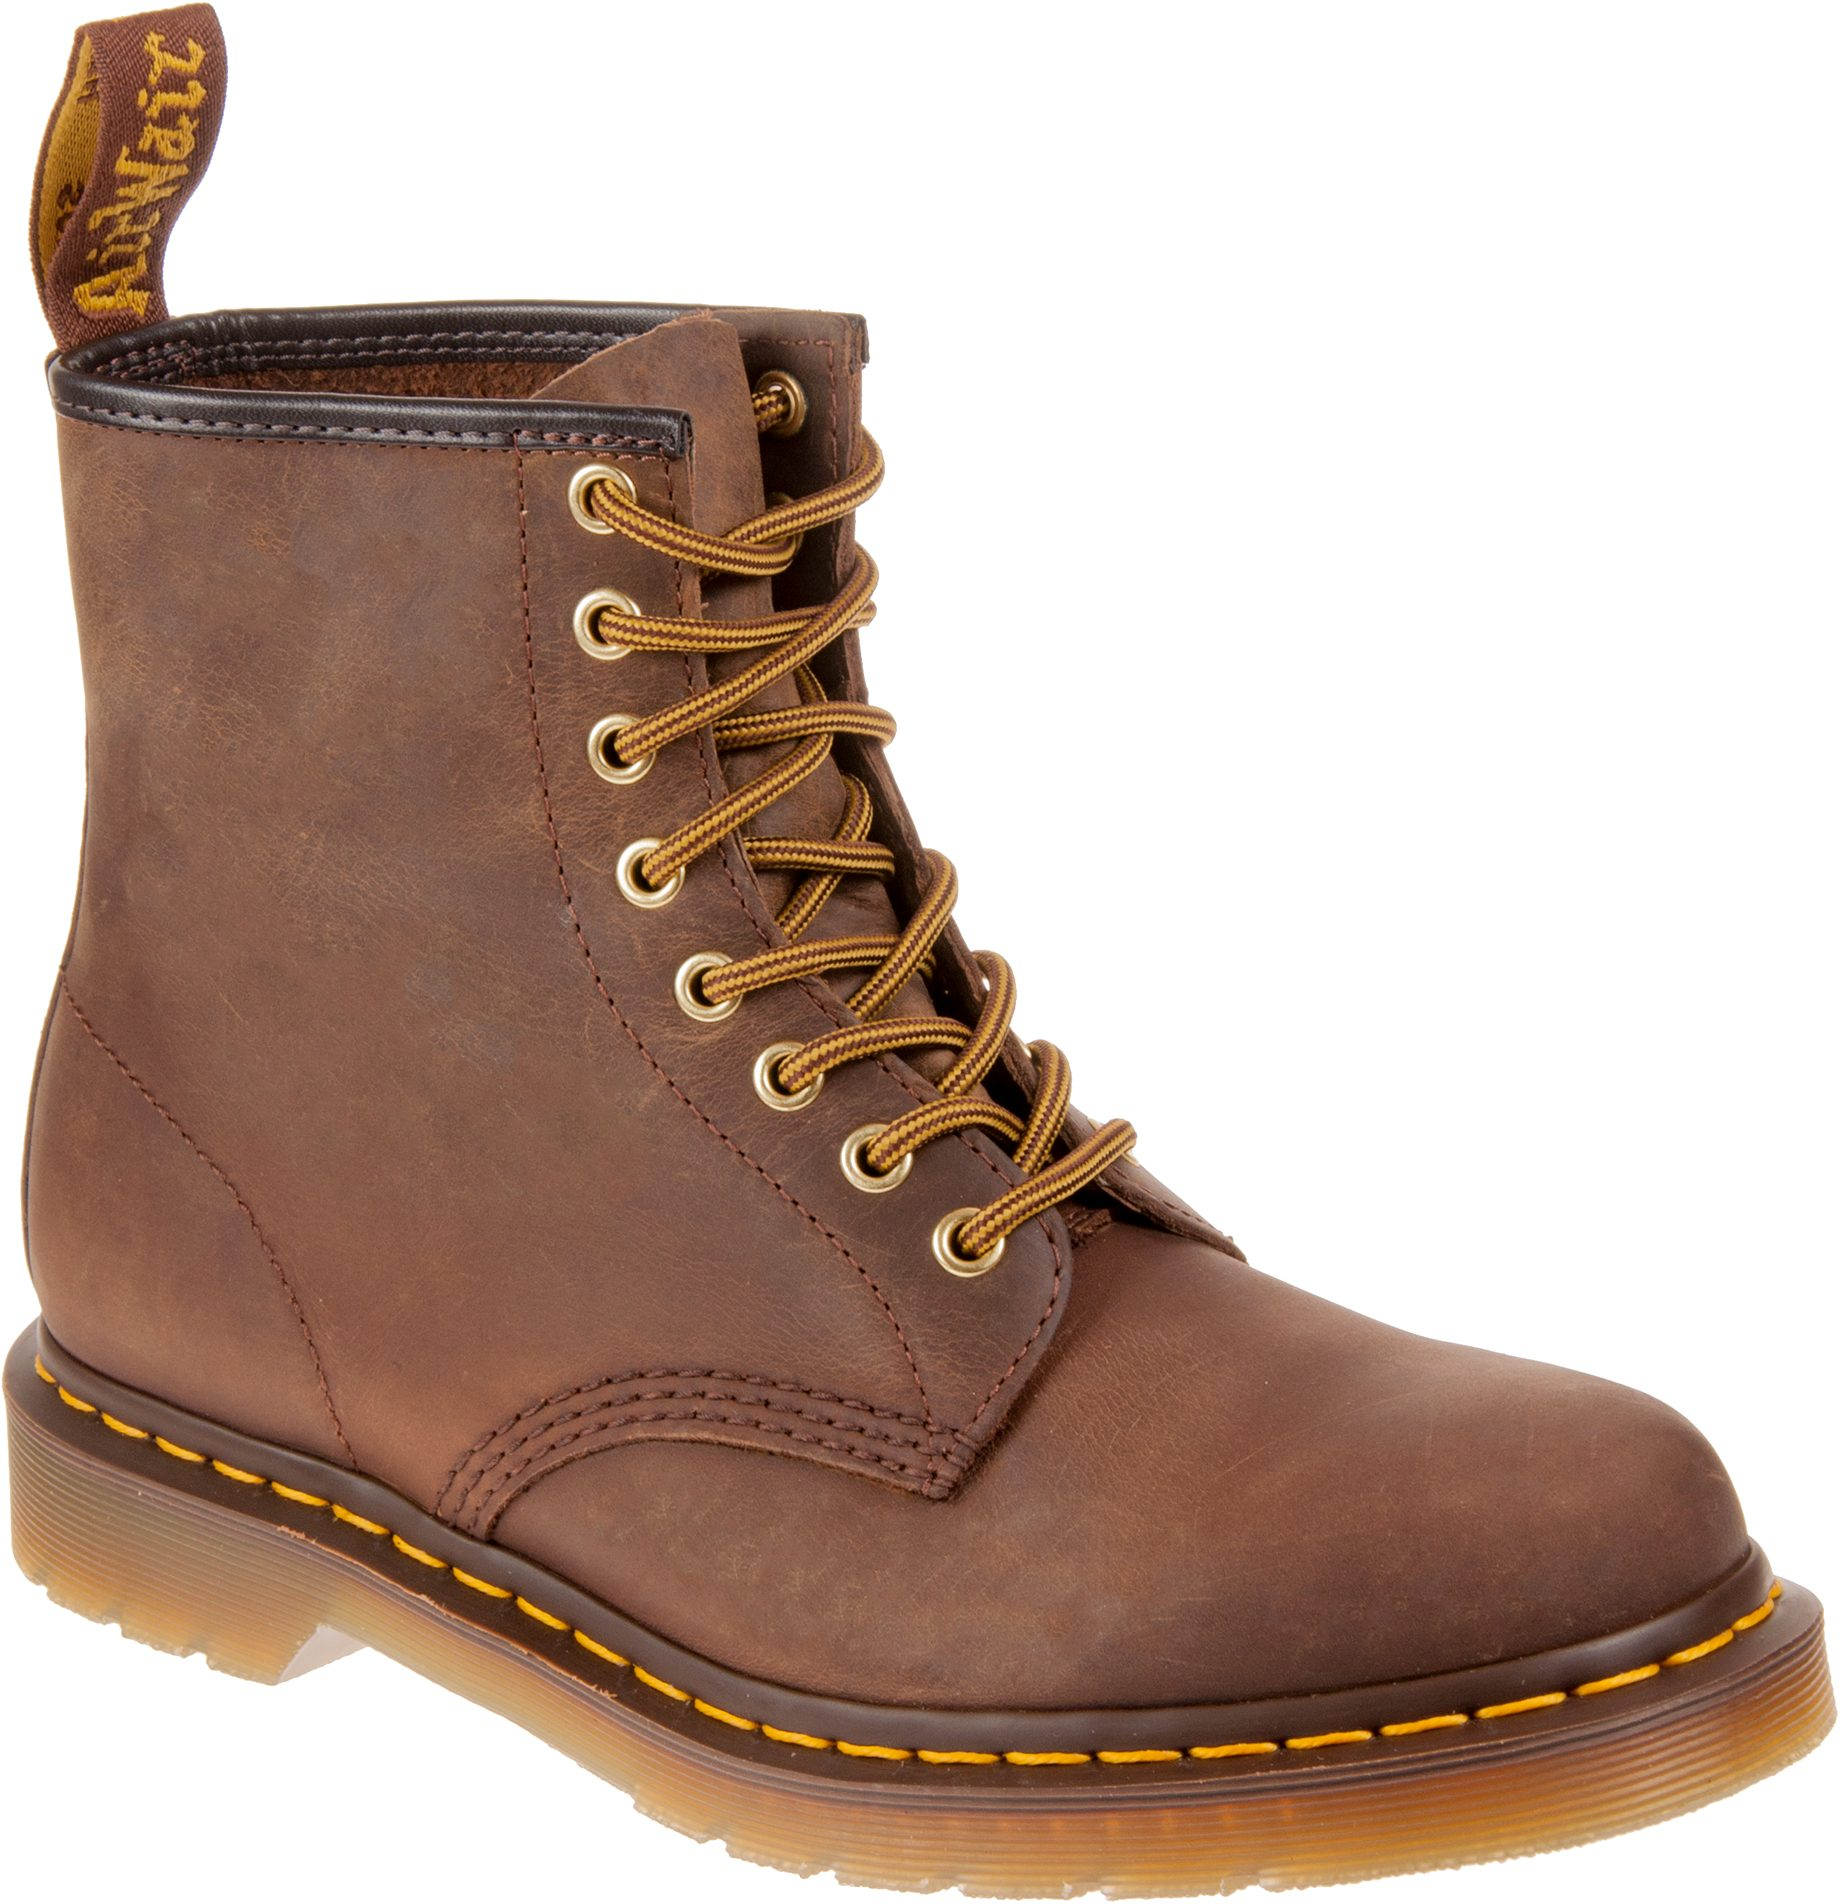 bc98bf06636 Womens Boots - Womens - Humphries Shoes